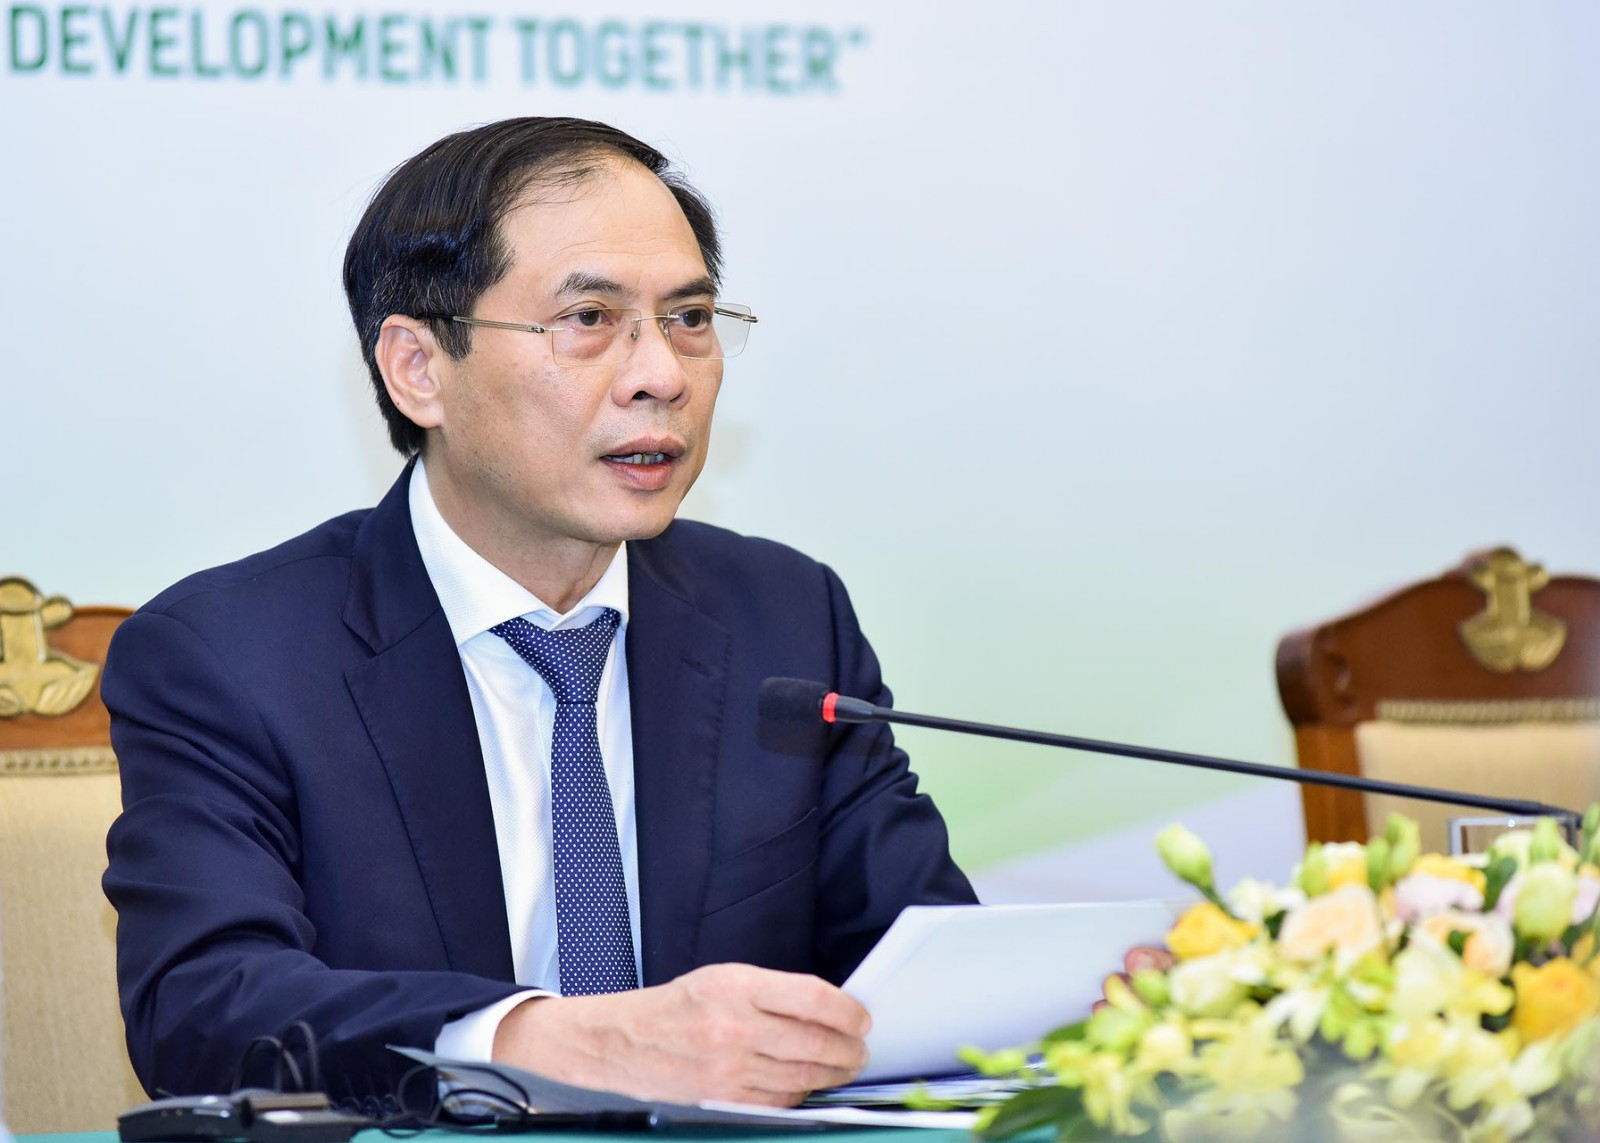 'Vietnam considers agriculture a key sector of the economy', said Minister Bui Thanh Son.